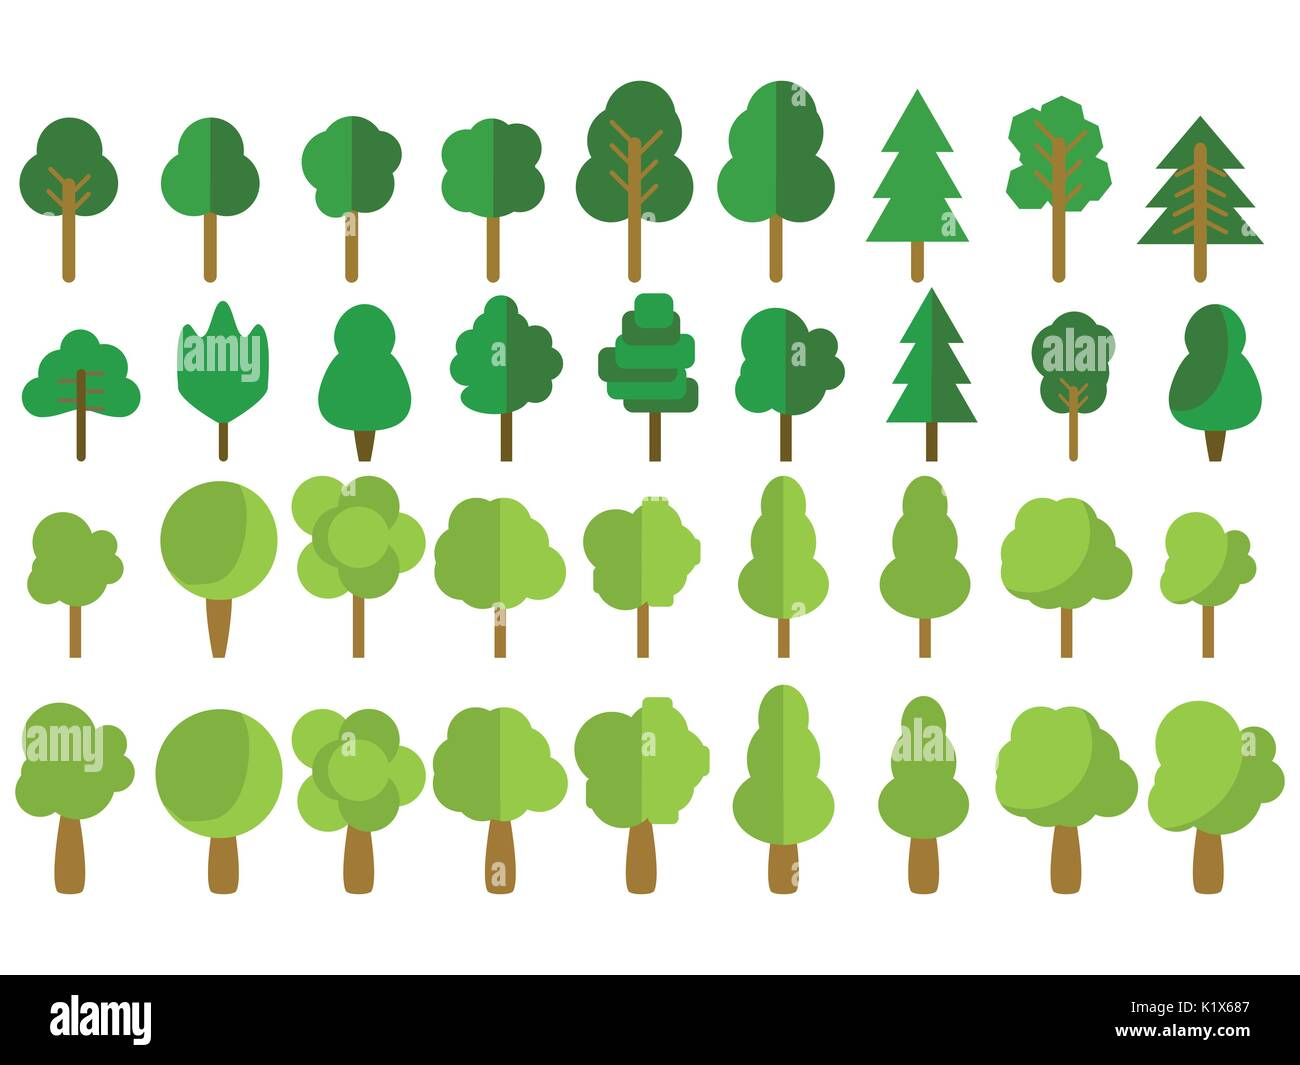 Flat trees. Trees set in a flat design. Vector icons. Stock Vector